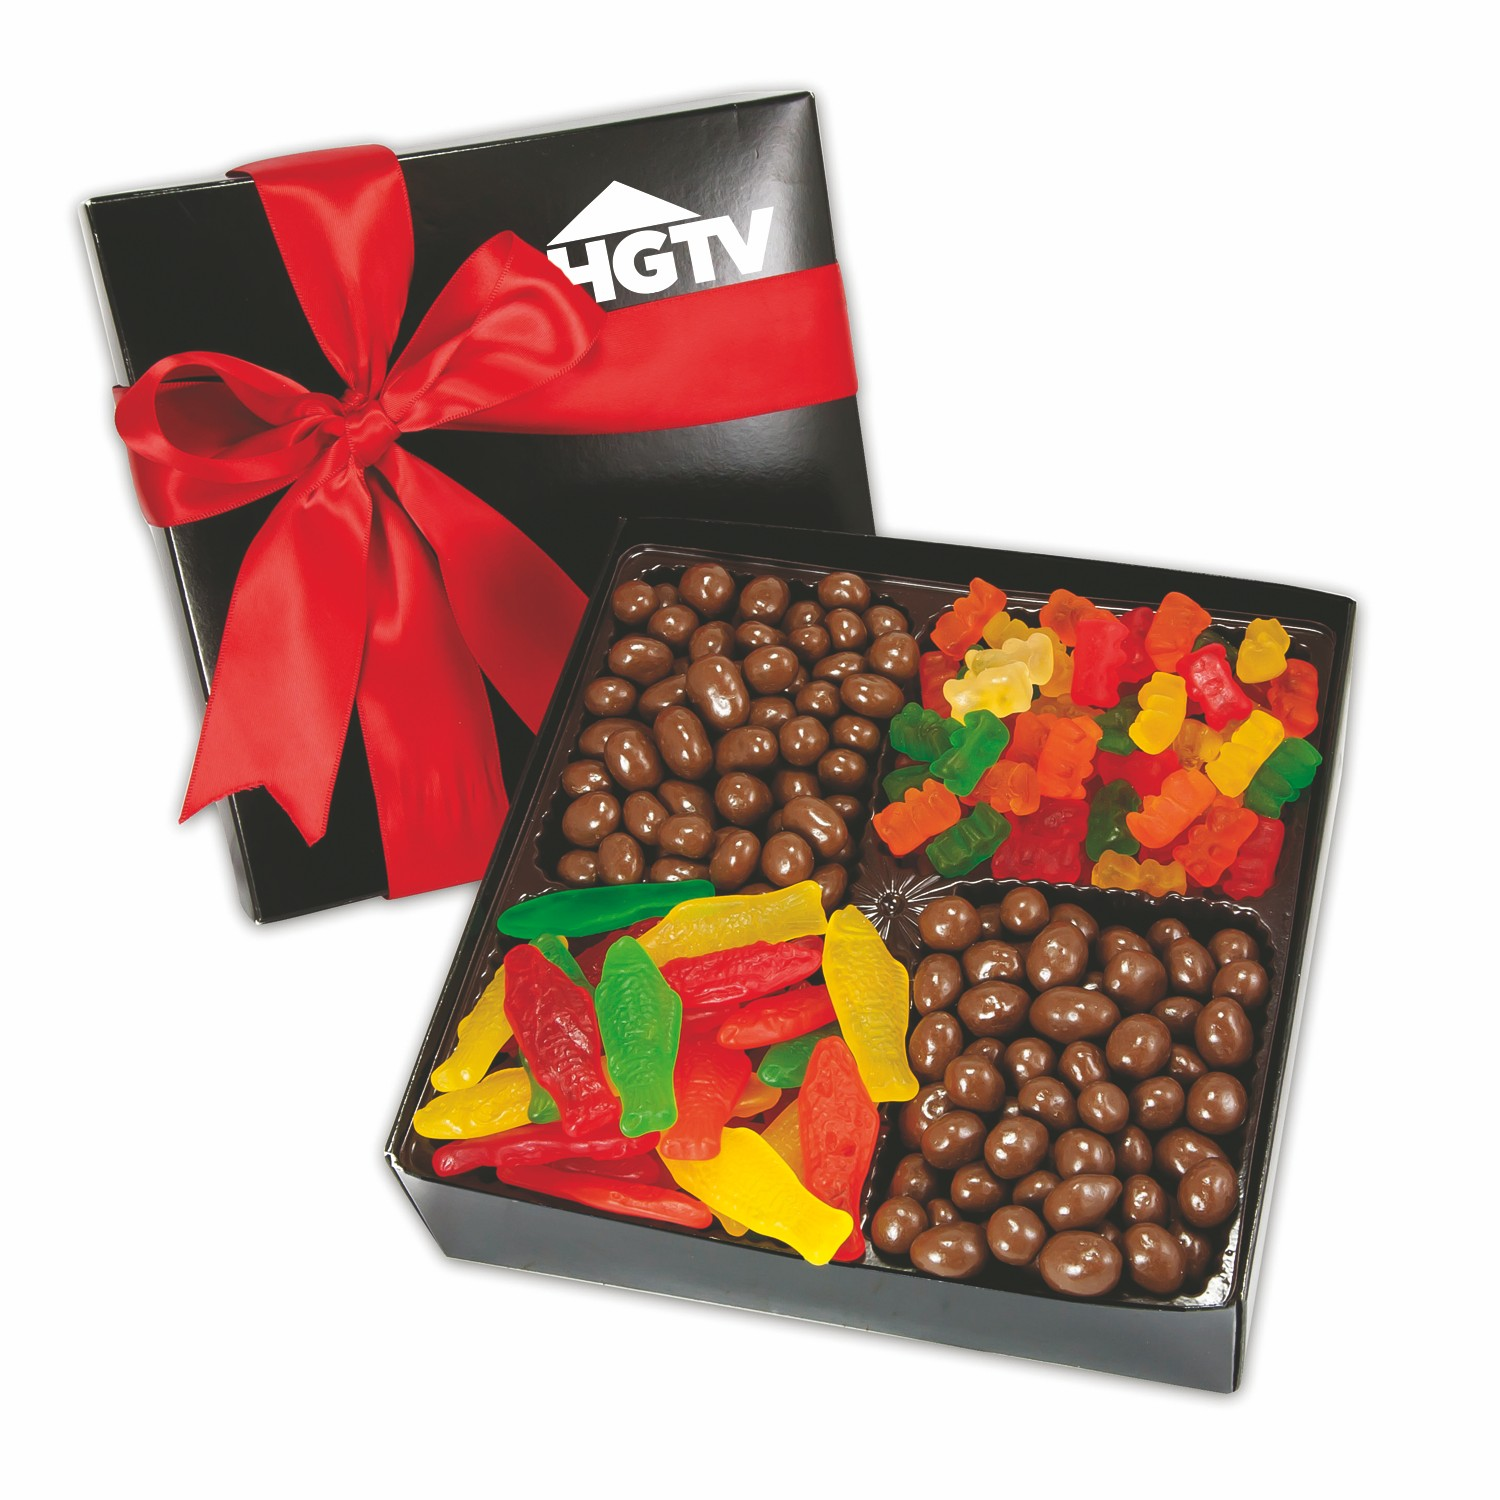 4 Delight Gift Box w/Gourmet Confections, 4CGB-GC, One Colour Imprint